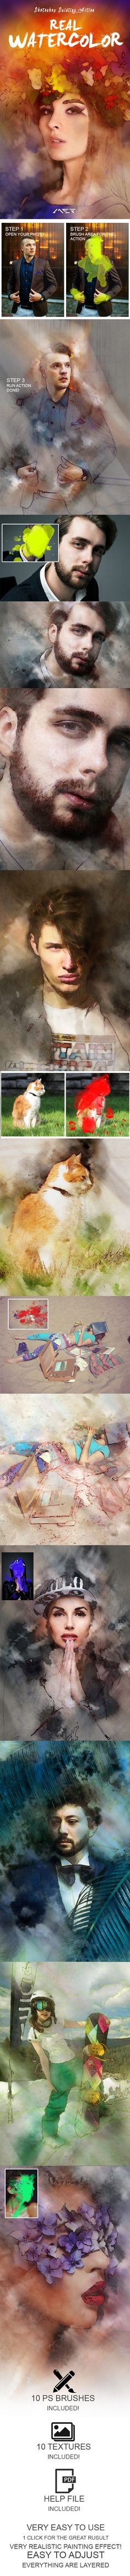 Real Watercolor Painting Photoshop Action - Photo Effects Actions